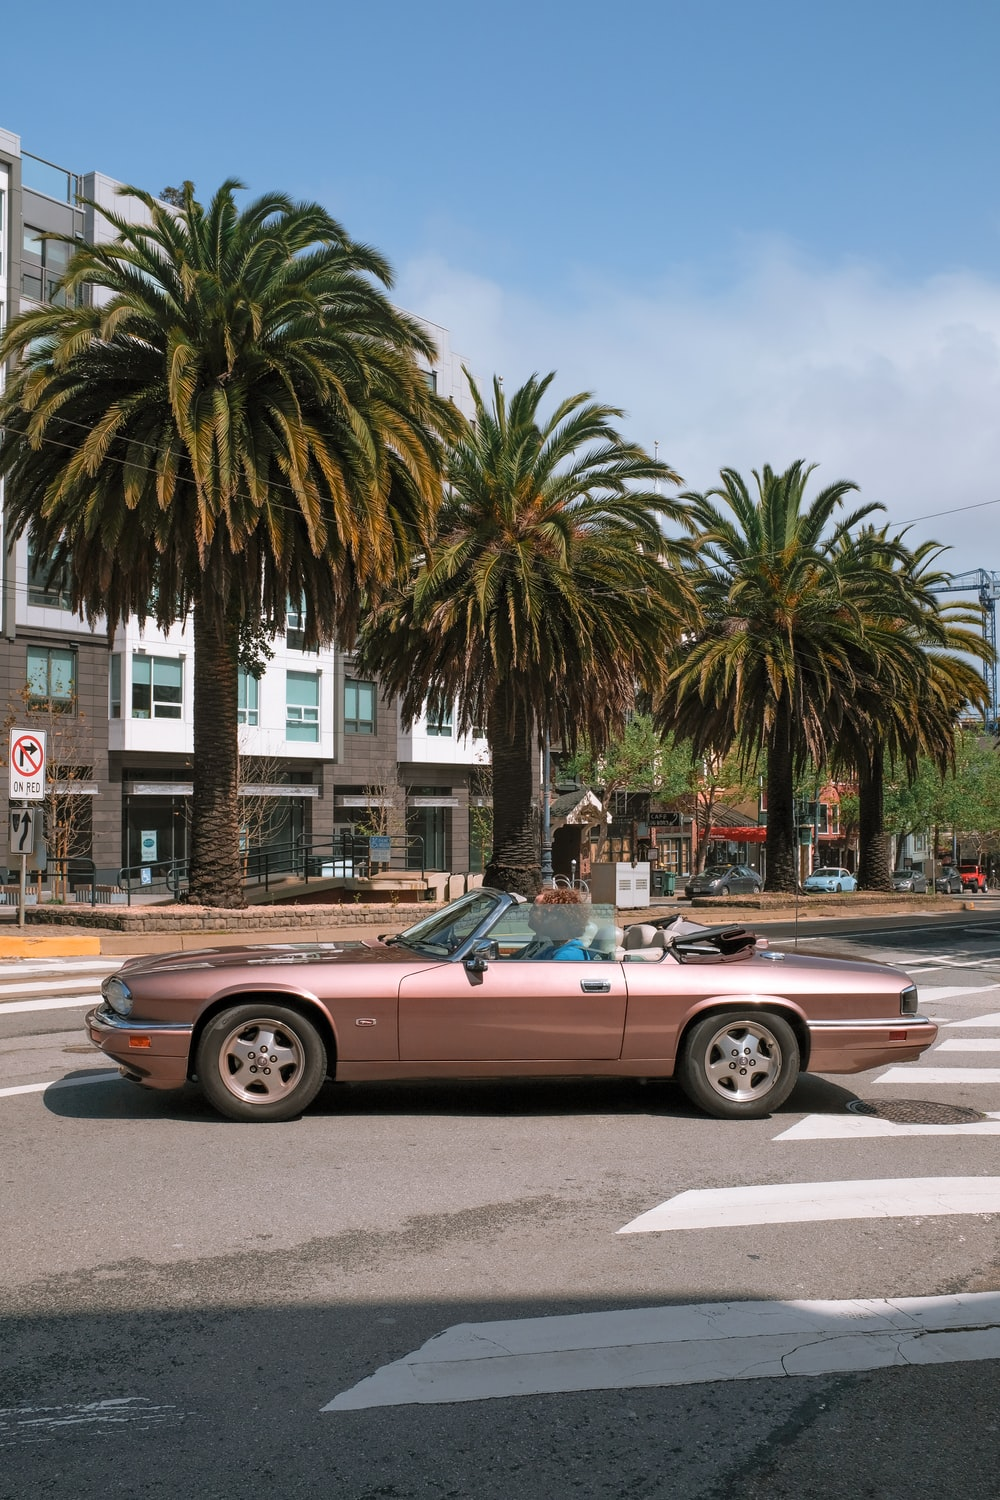 Jaguar Highway Vintage Car And Palm Tree Hd Photo By Josh Edgoose